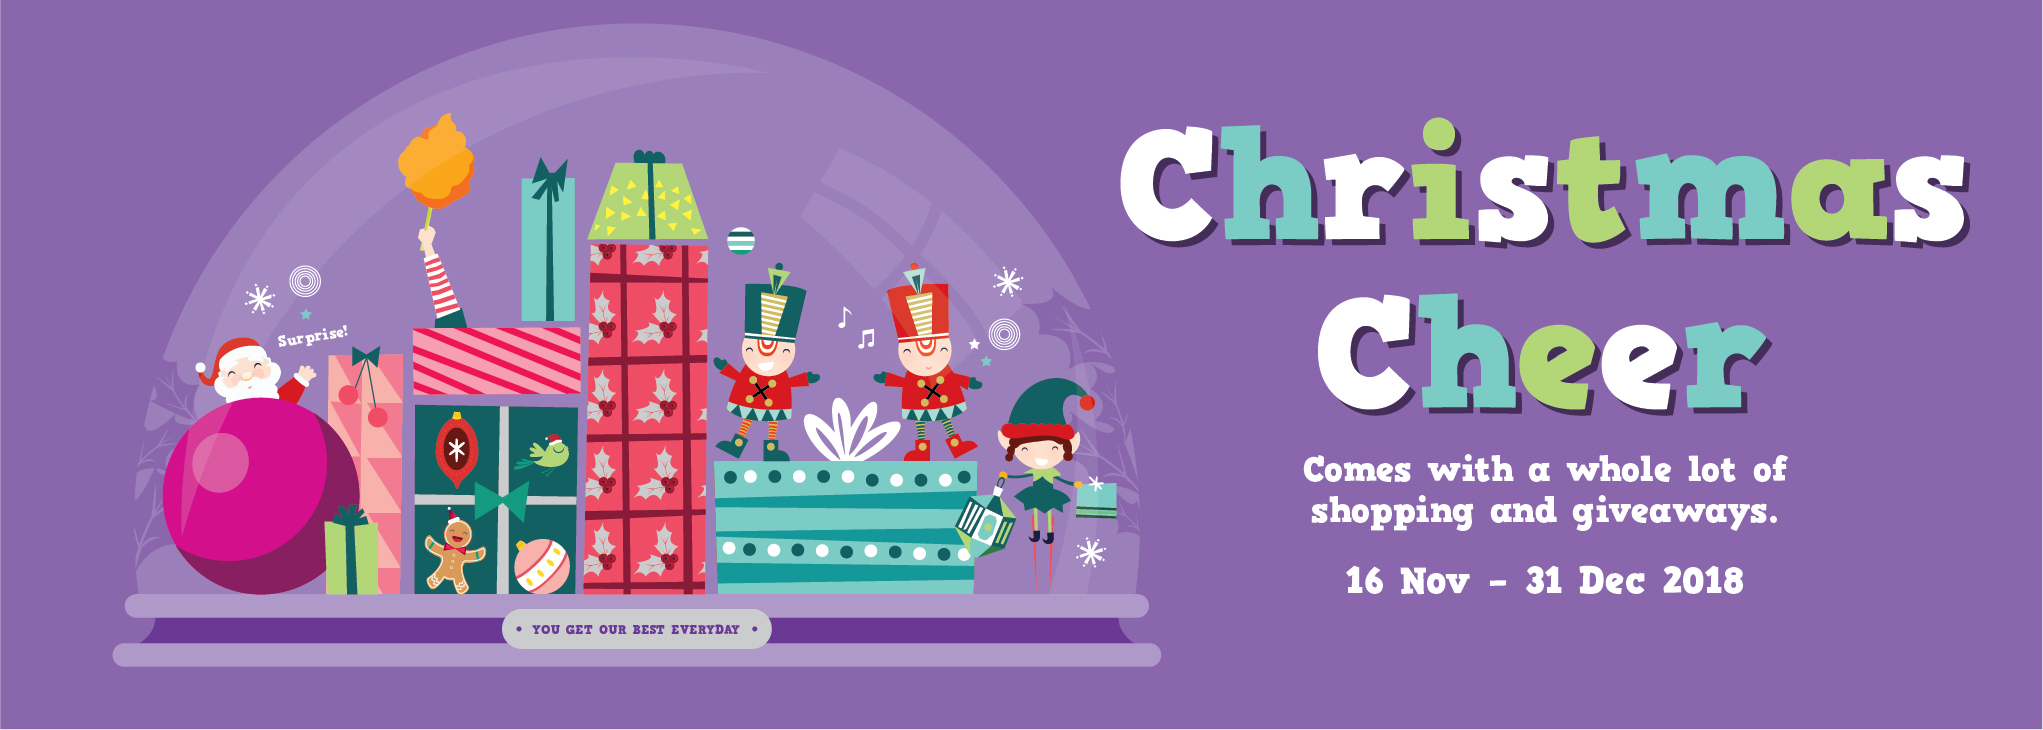 WM11-18 West Mall Christmas Web Banner